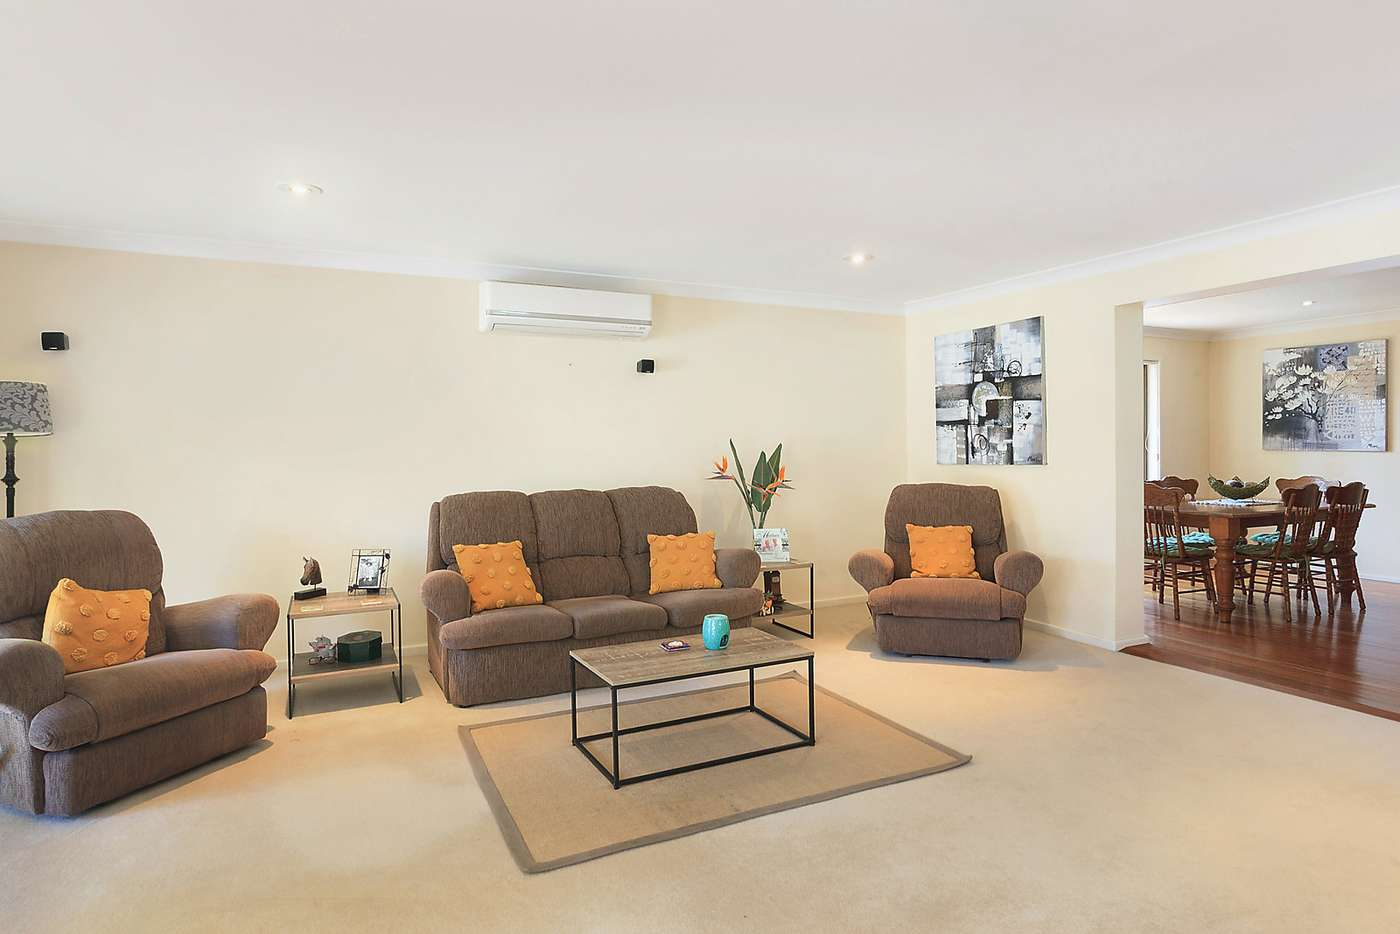 Sixth view of Homely house listing, 435 Wards Hill Road, Empire Bay NSW 2257